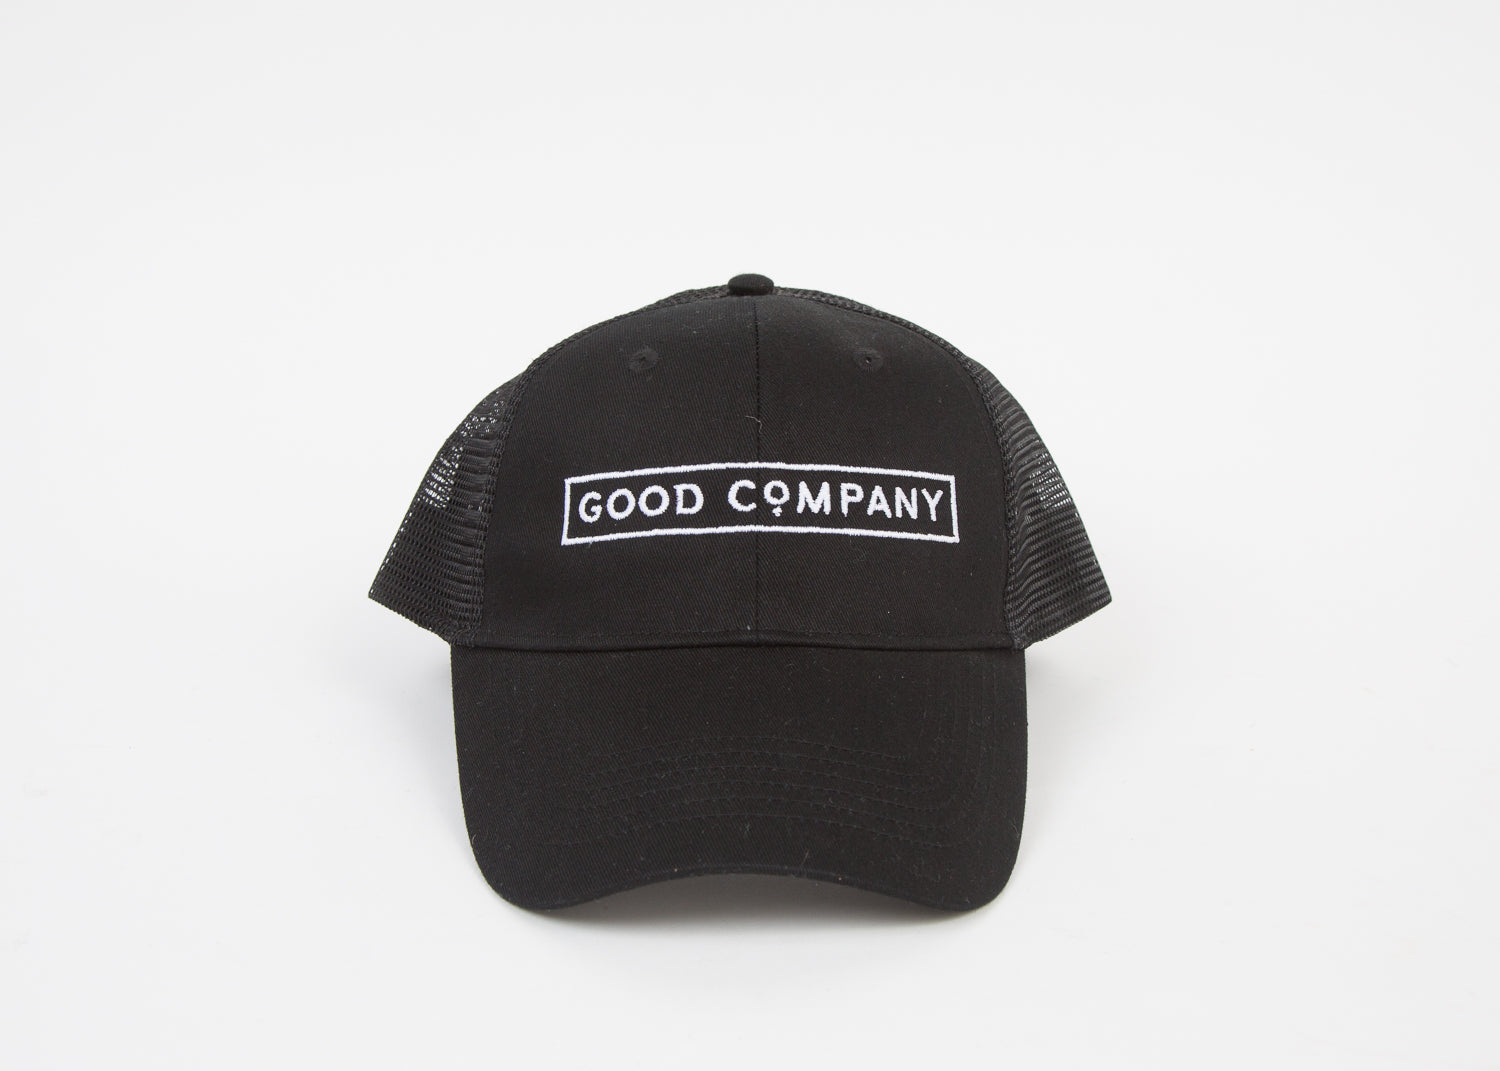 Good Company Hat